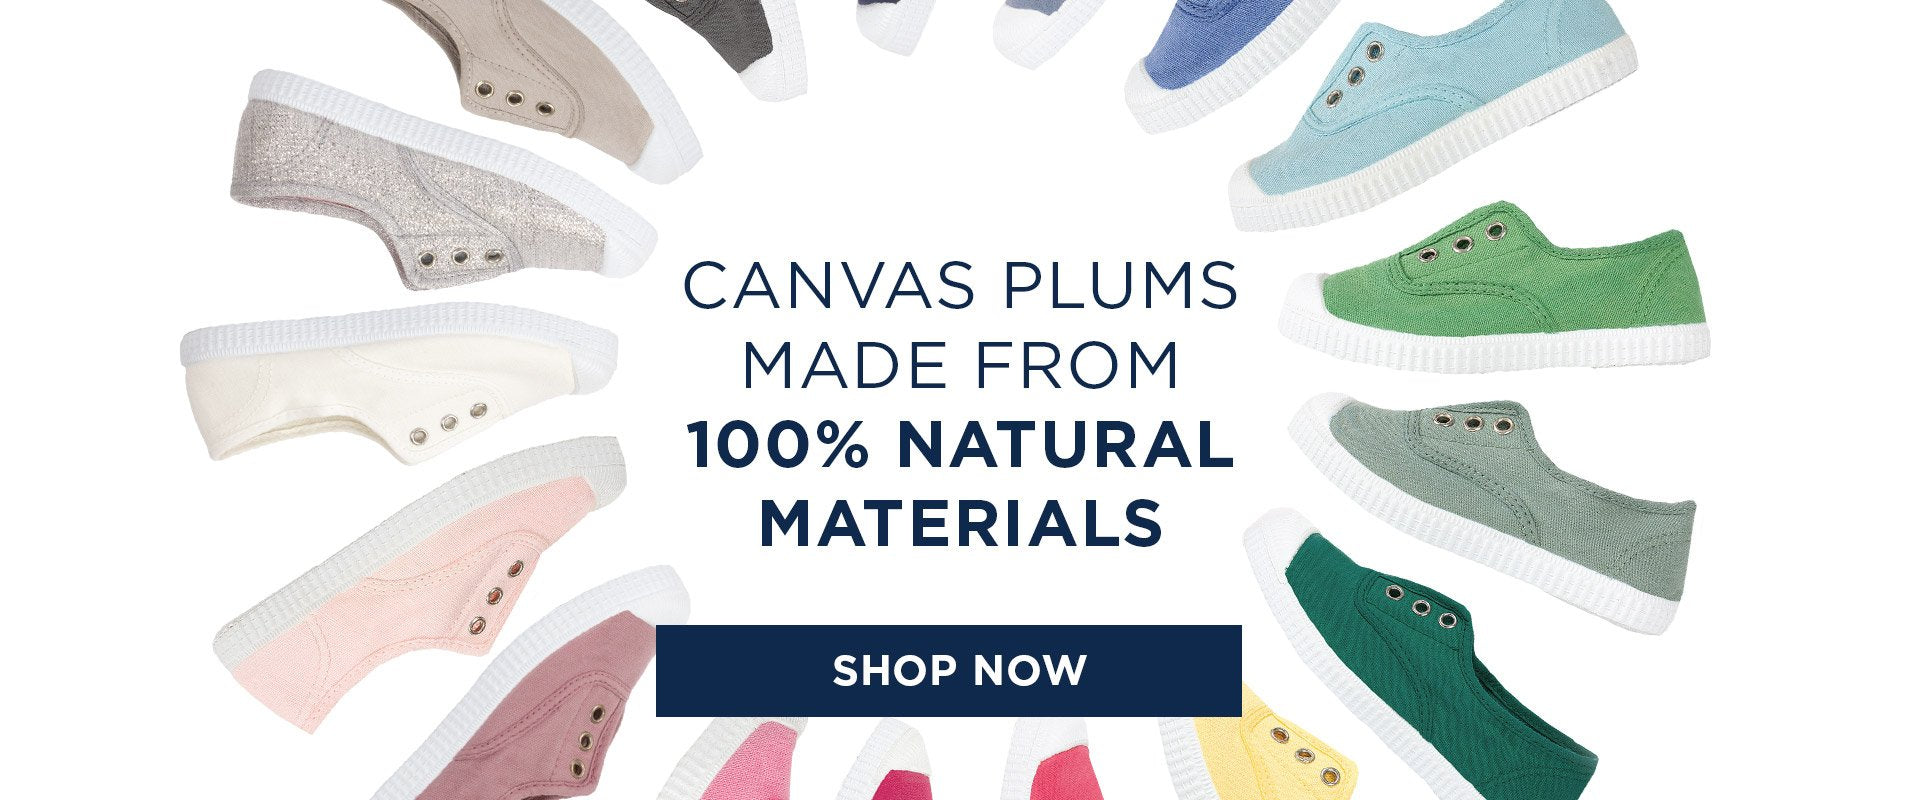 Hampton Canvas Plimsoll Shoes Blue Green Pink